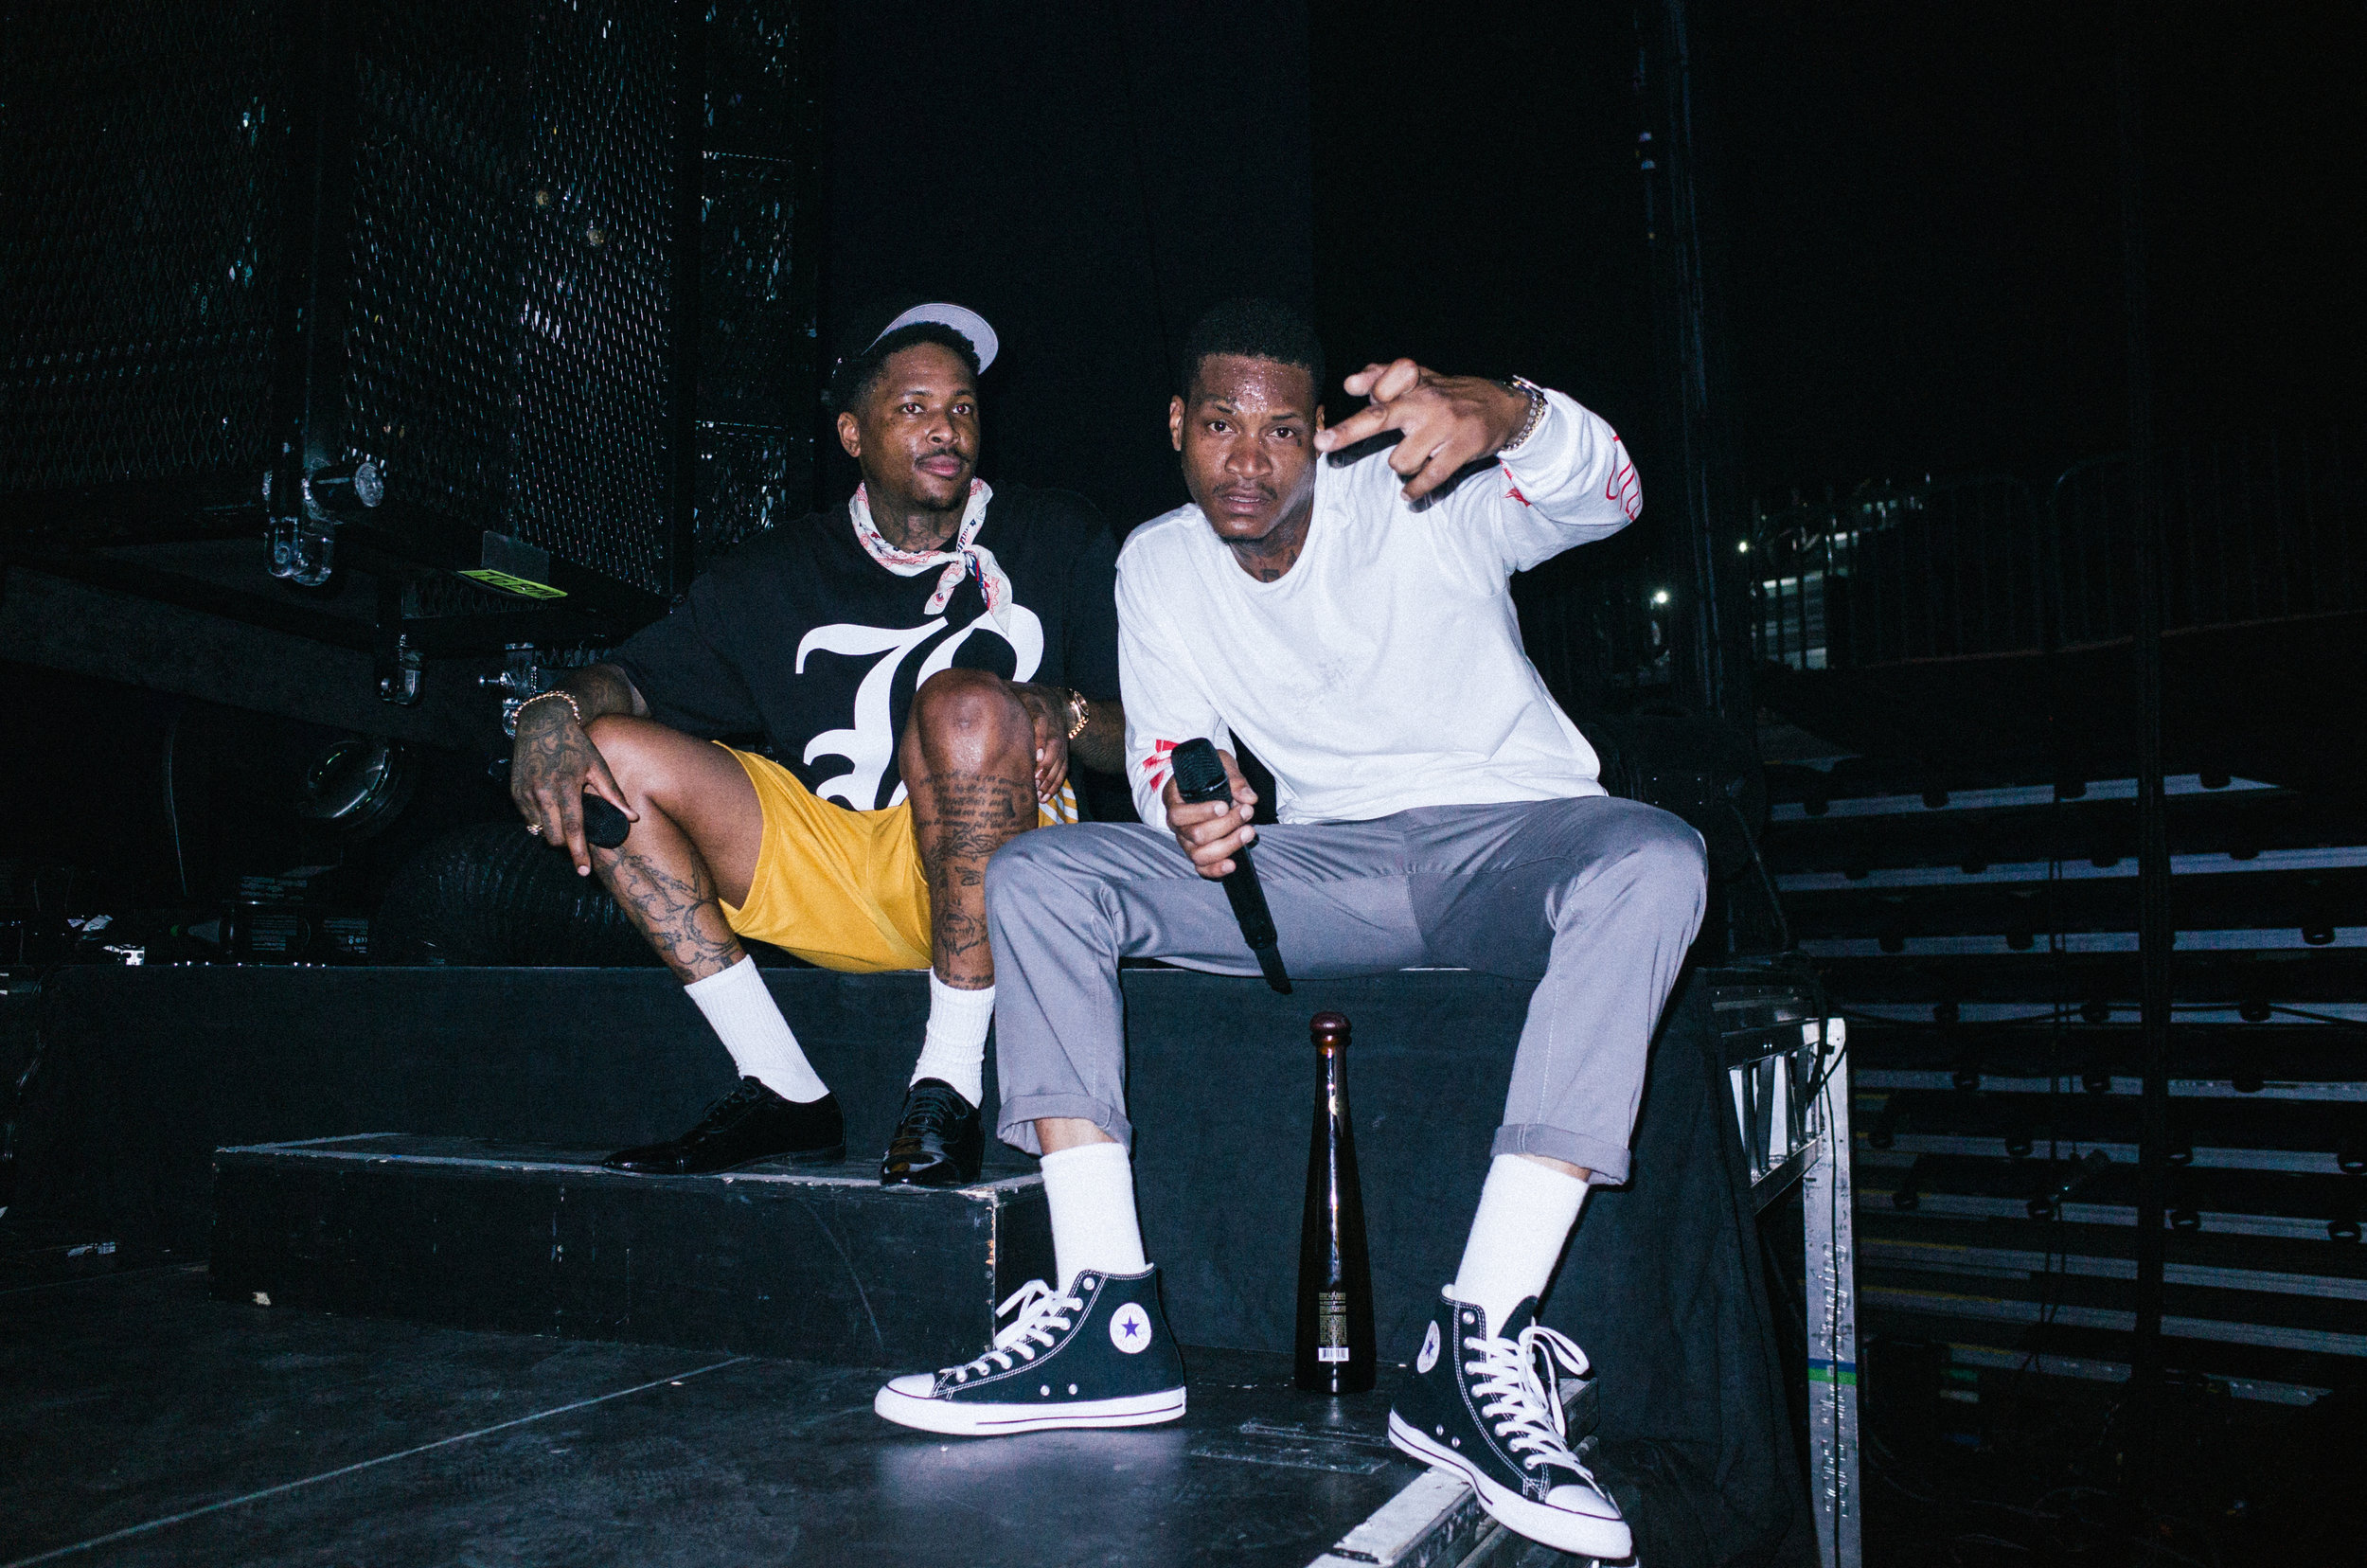 YG and Slim 400 side stage during a show break, 2017